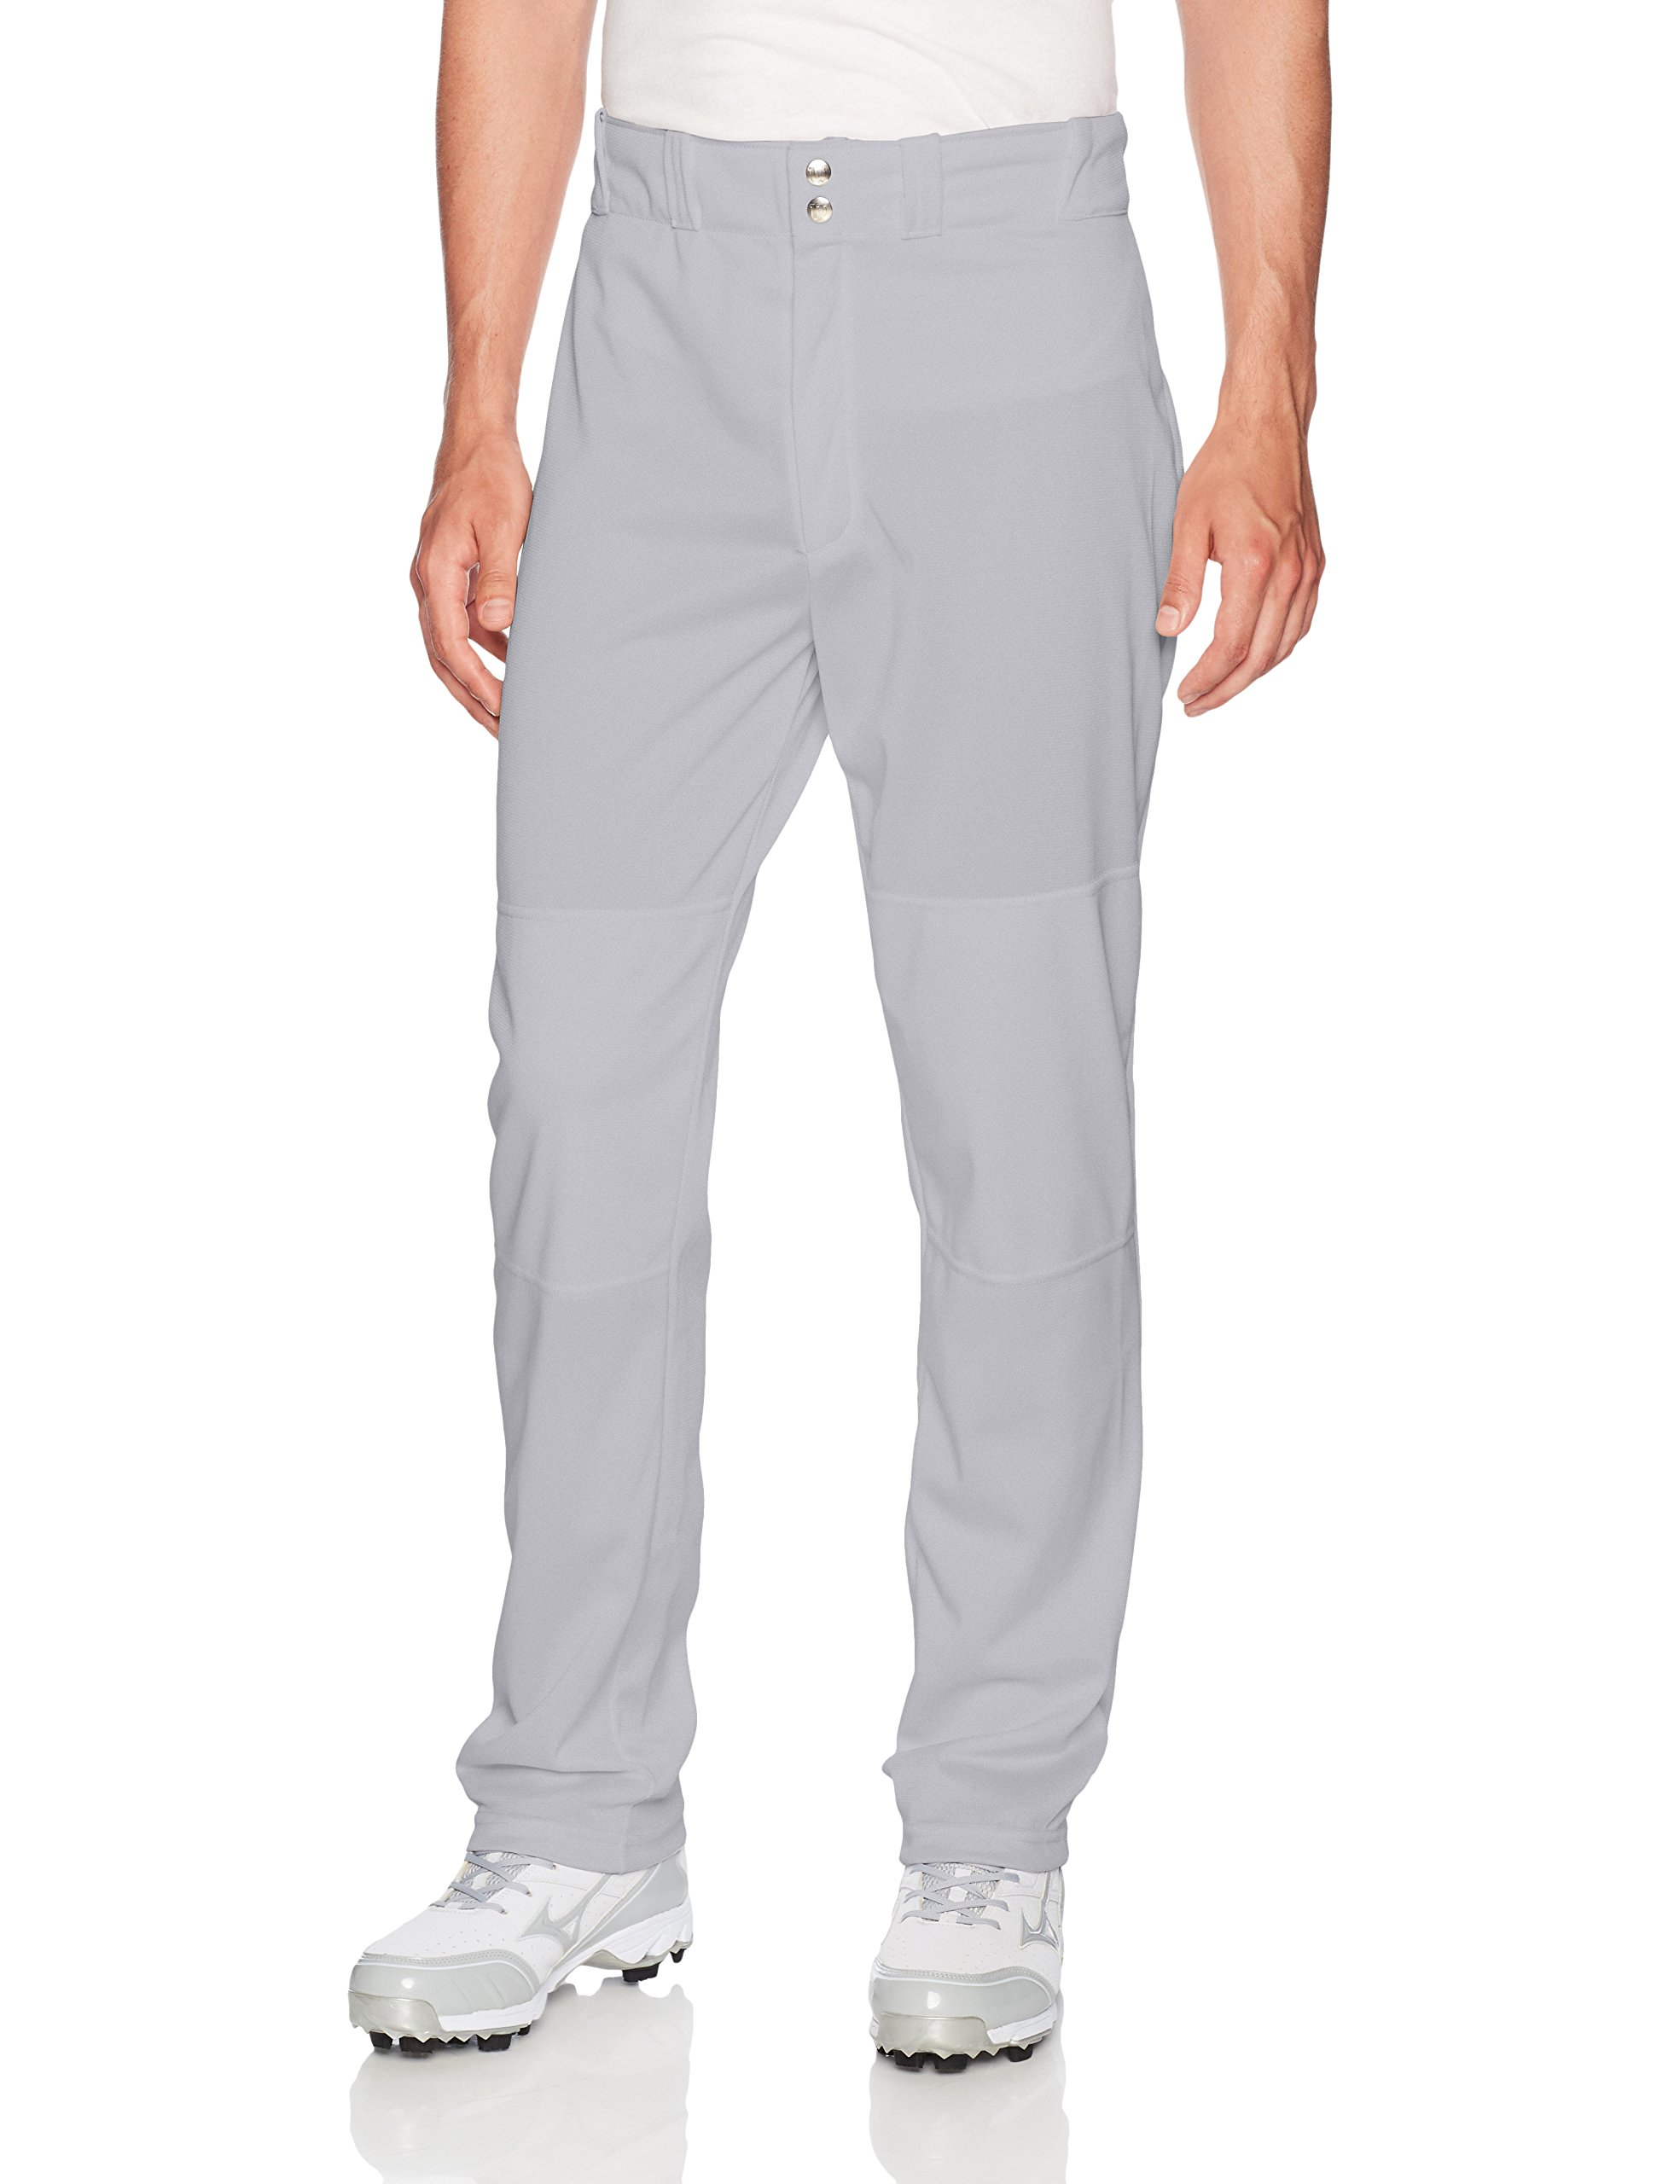 Wilson Men's Classic Relaxed Fit Baseball Pant, Grey, XX-Large by Wilson